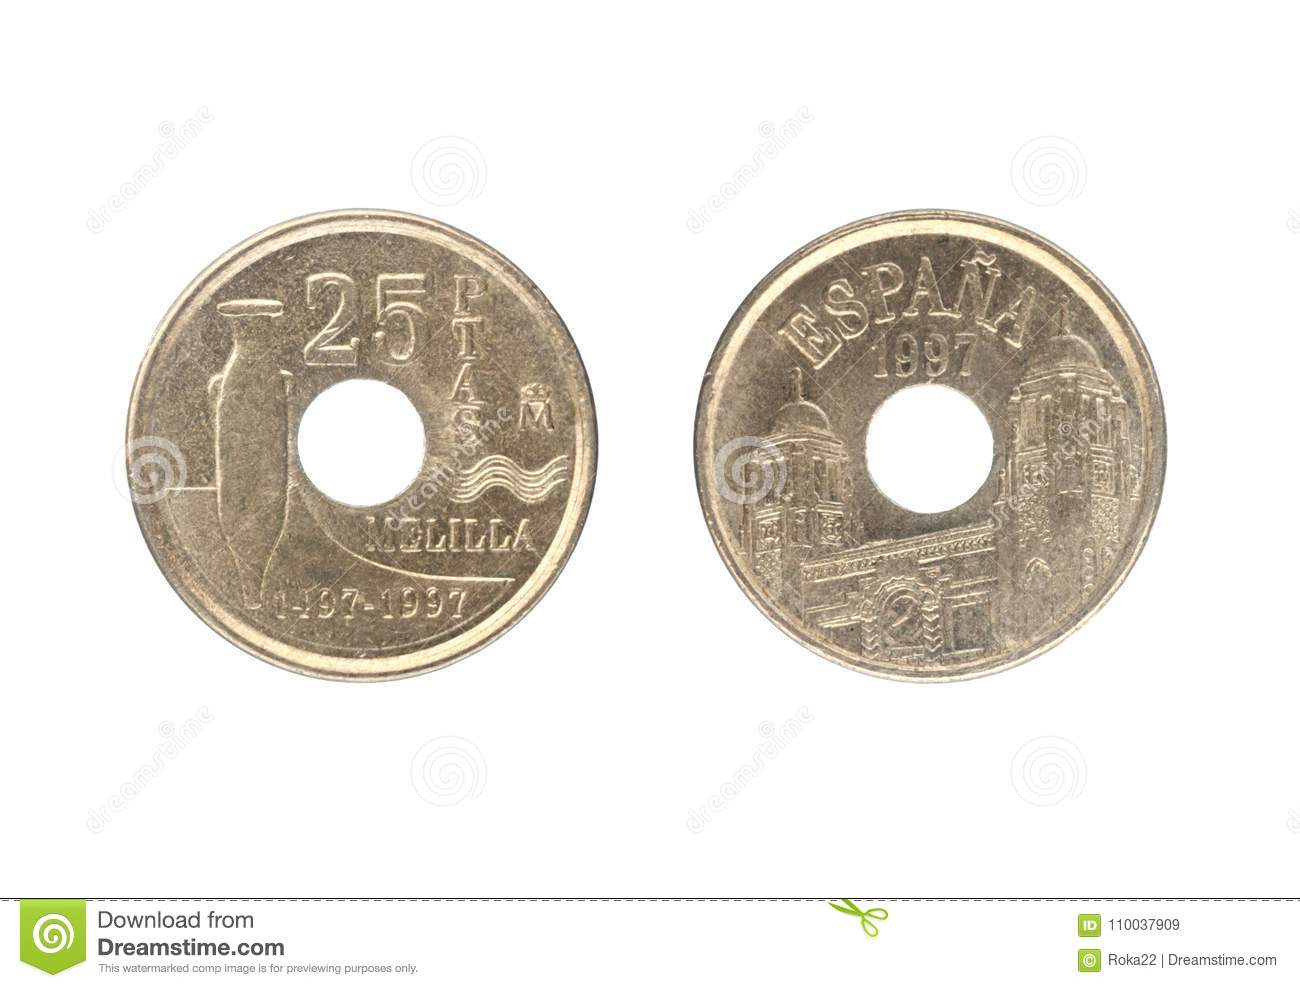 25 Pesetas Coin Issued By Spain In 1997 Stock Image Image Of